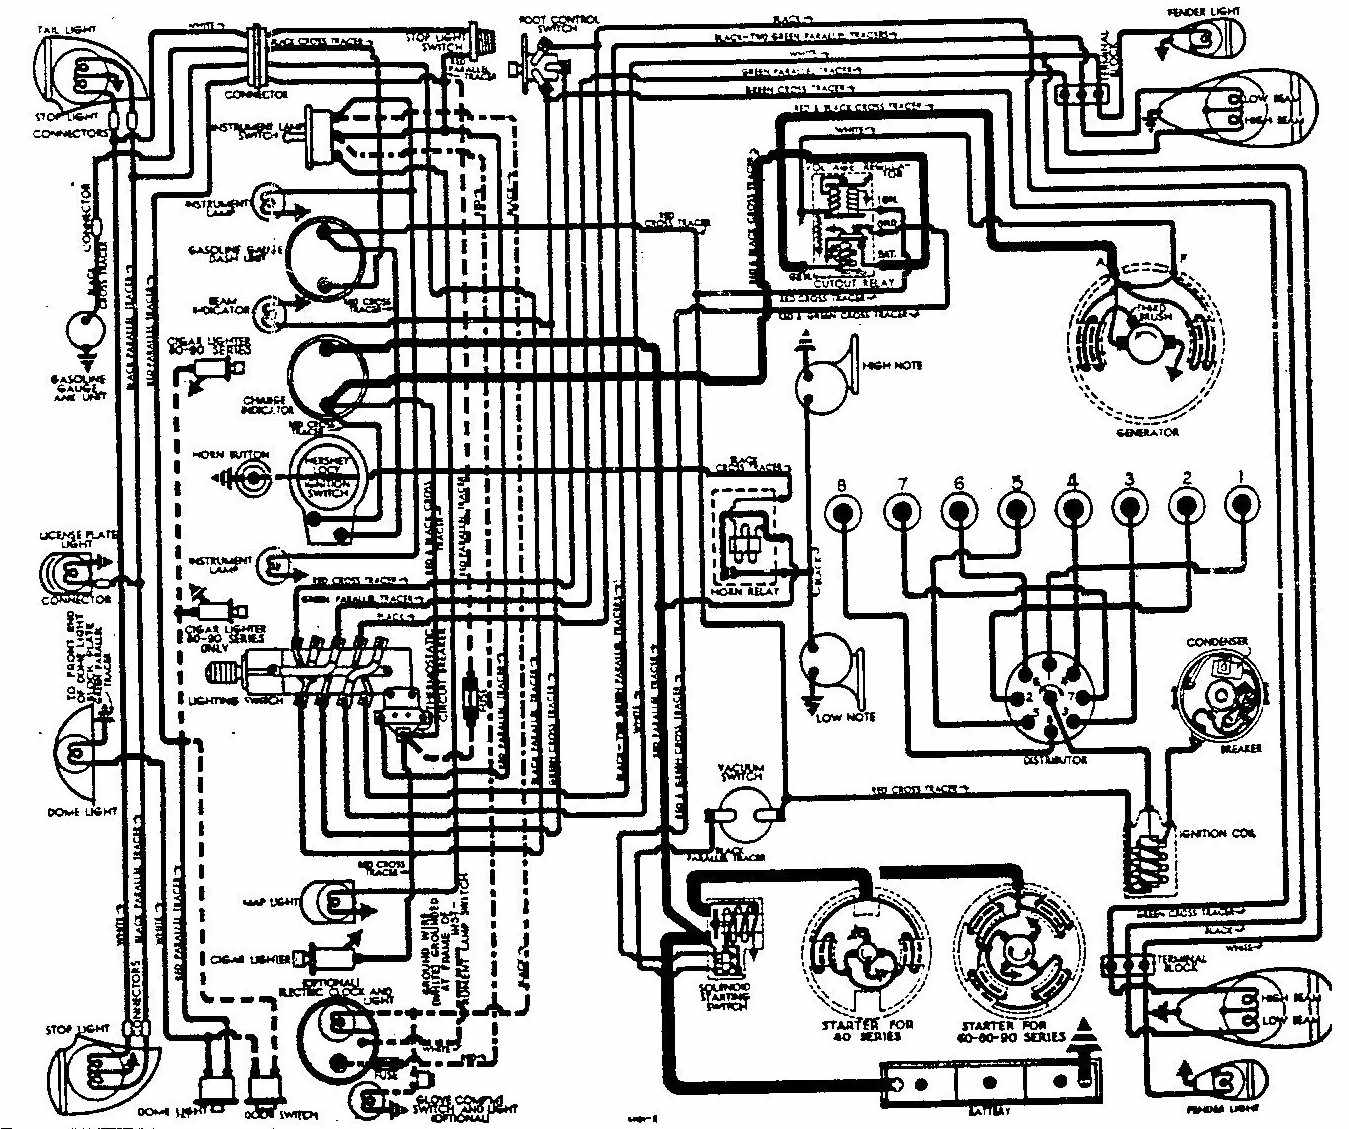 wiring diagram ford 4600 su wiring diagram Ford 3000 Starter Wiring